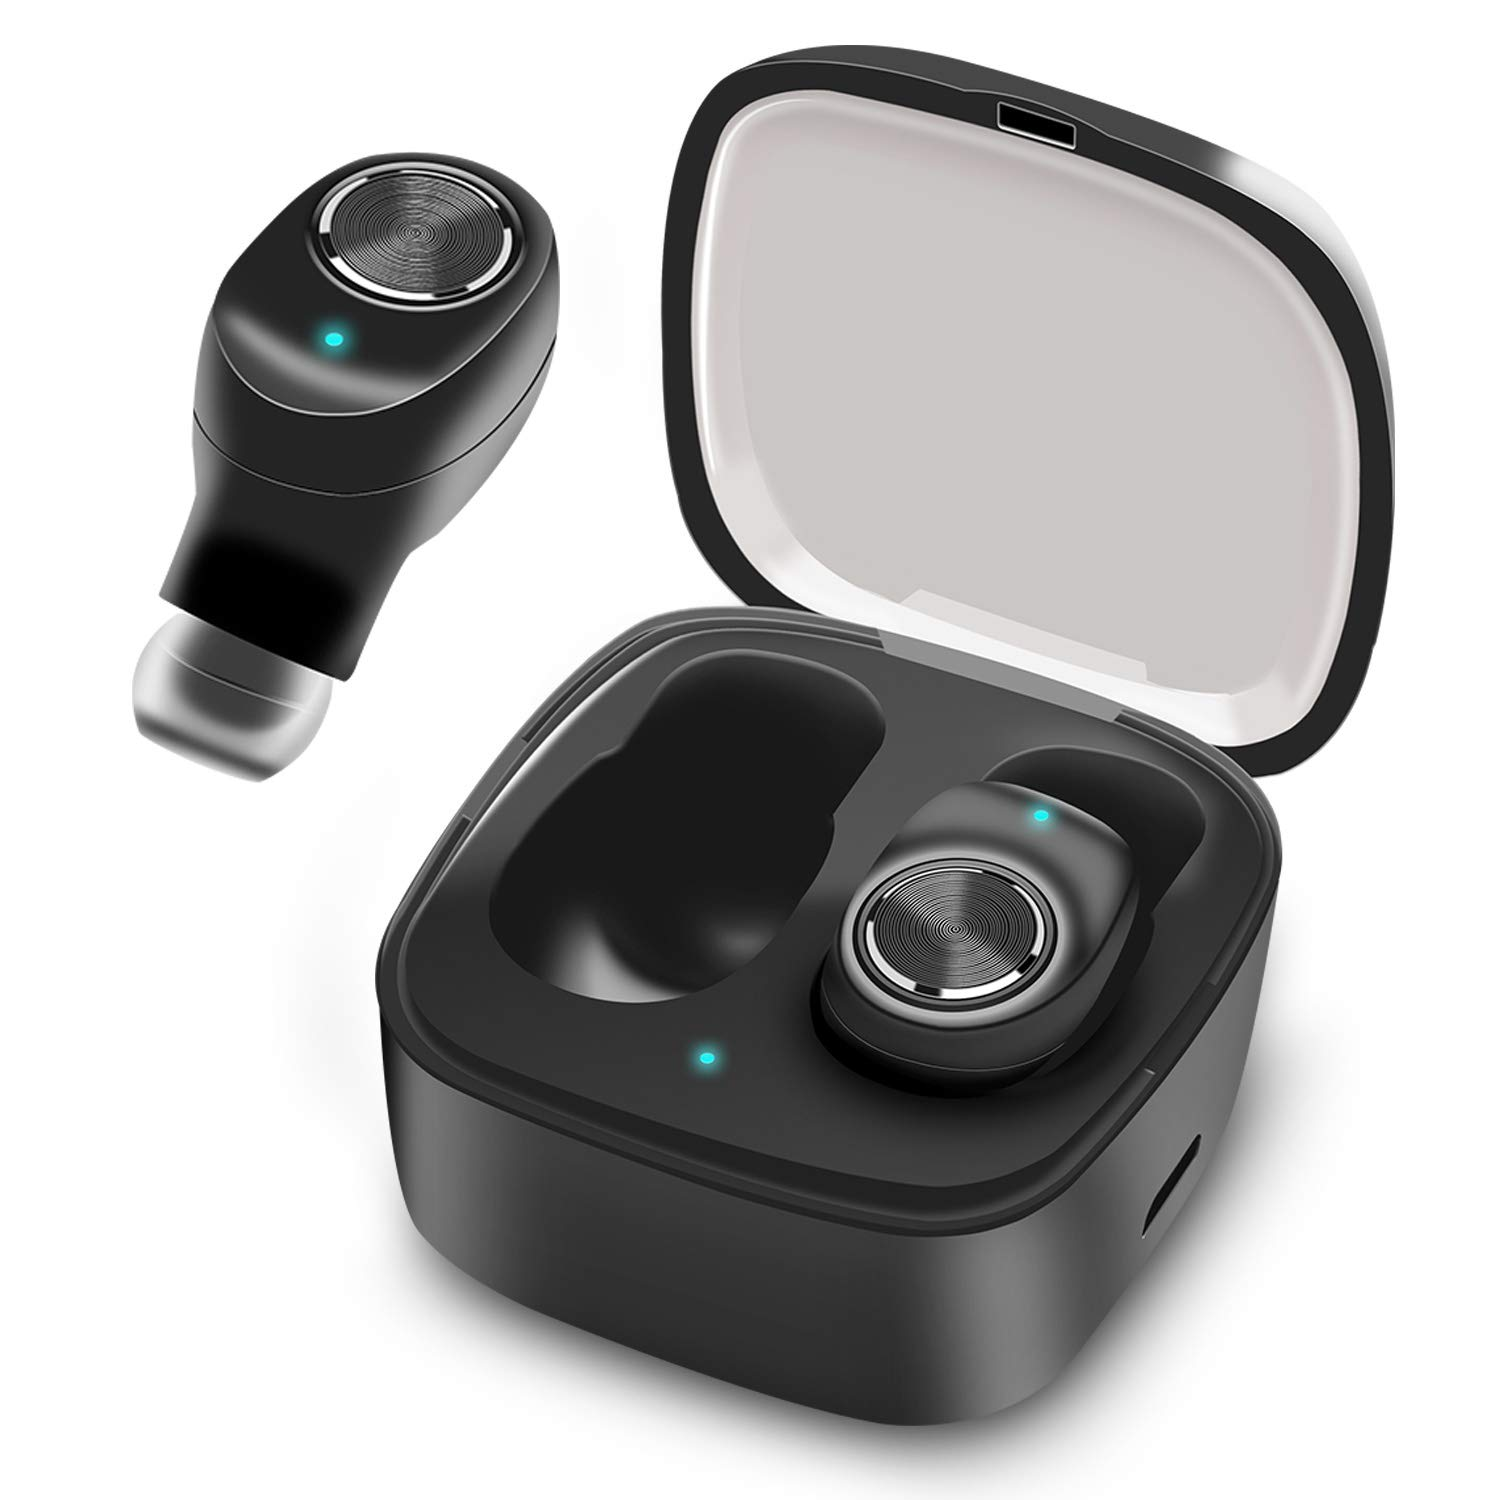 Bluetooth True Wireless Earbuds, Noise Cancelling Bluetooth Headphones in-Ear True Wireless Earbuds 10H Playtime Deep Bass Built in Microphone, with Portable Charging Case Sweatproof While Sports